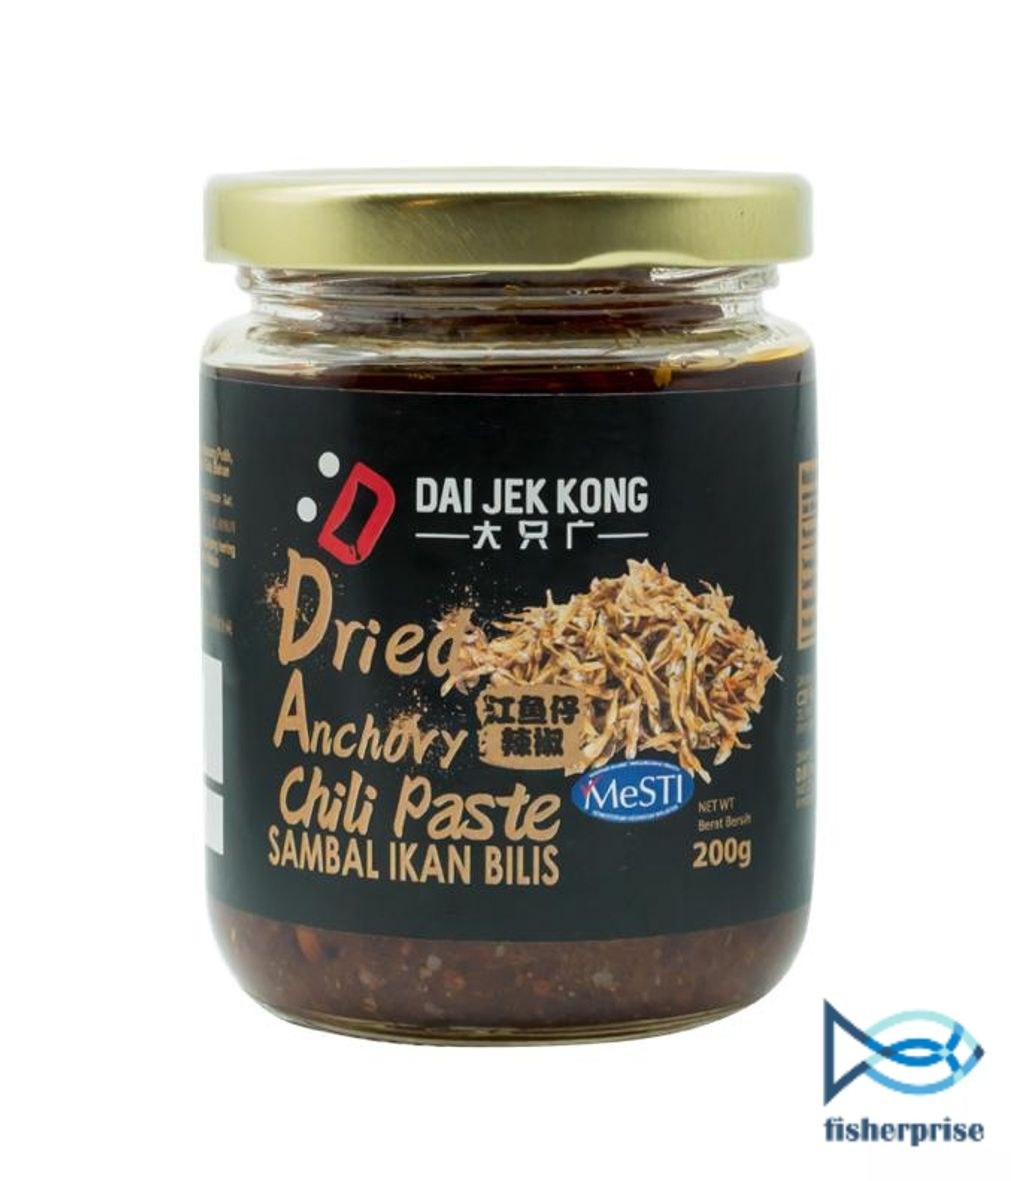 Dried Anchovy Chili Paste Flat.jpg